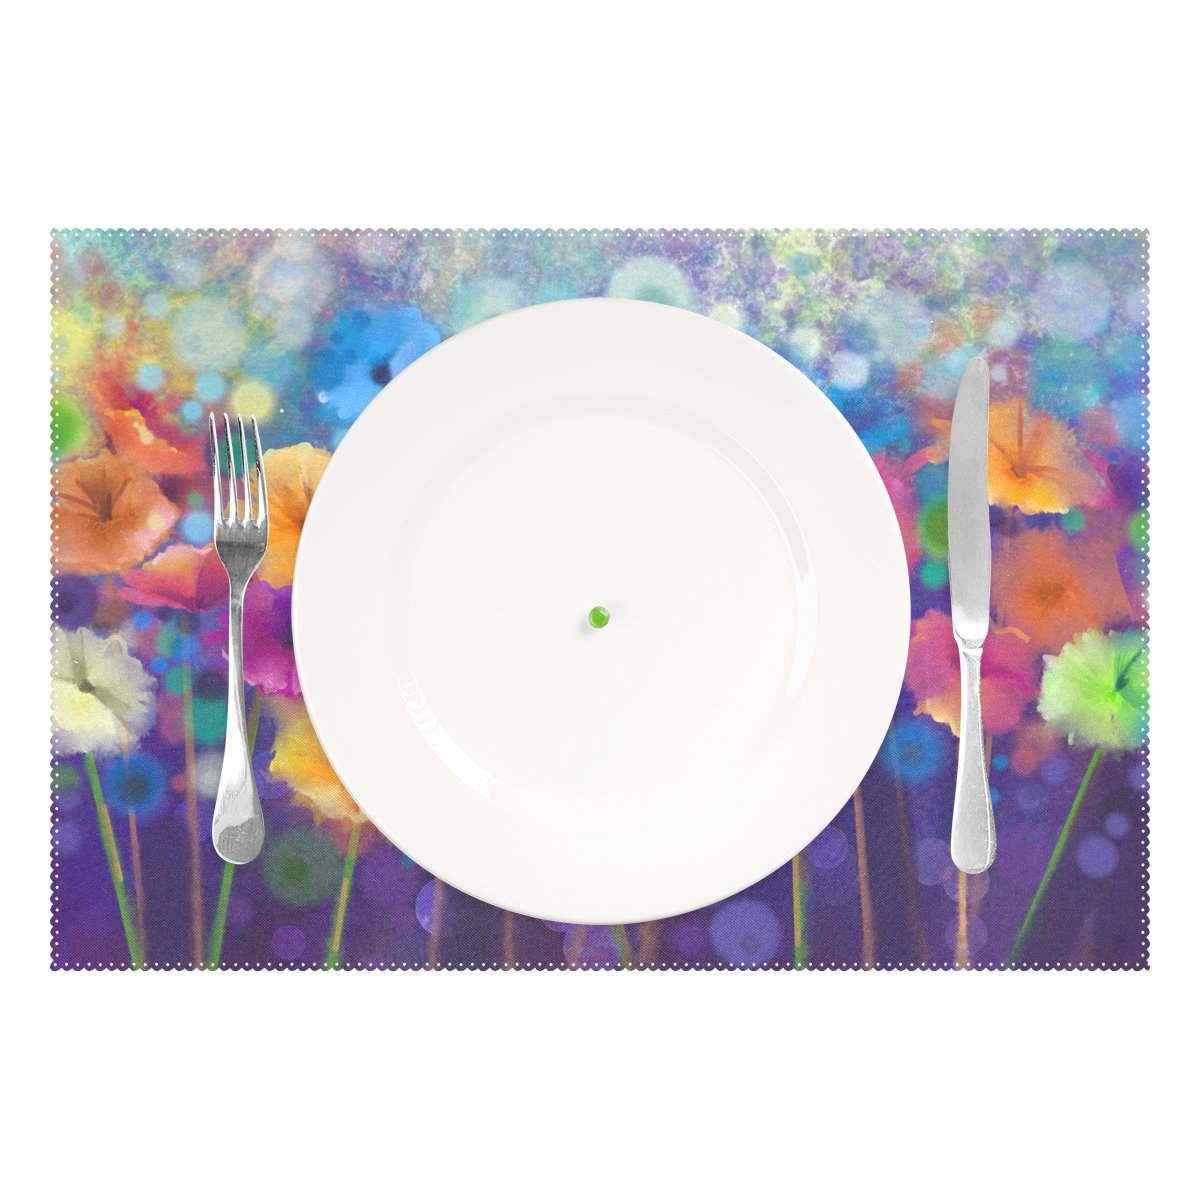 Floral Flower Heat-Resistant Washable Table Place Mats for Kitchen Dining Table Decoration Naanle Sunflower Placemat Set of 6